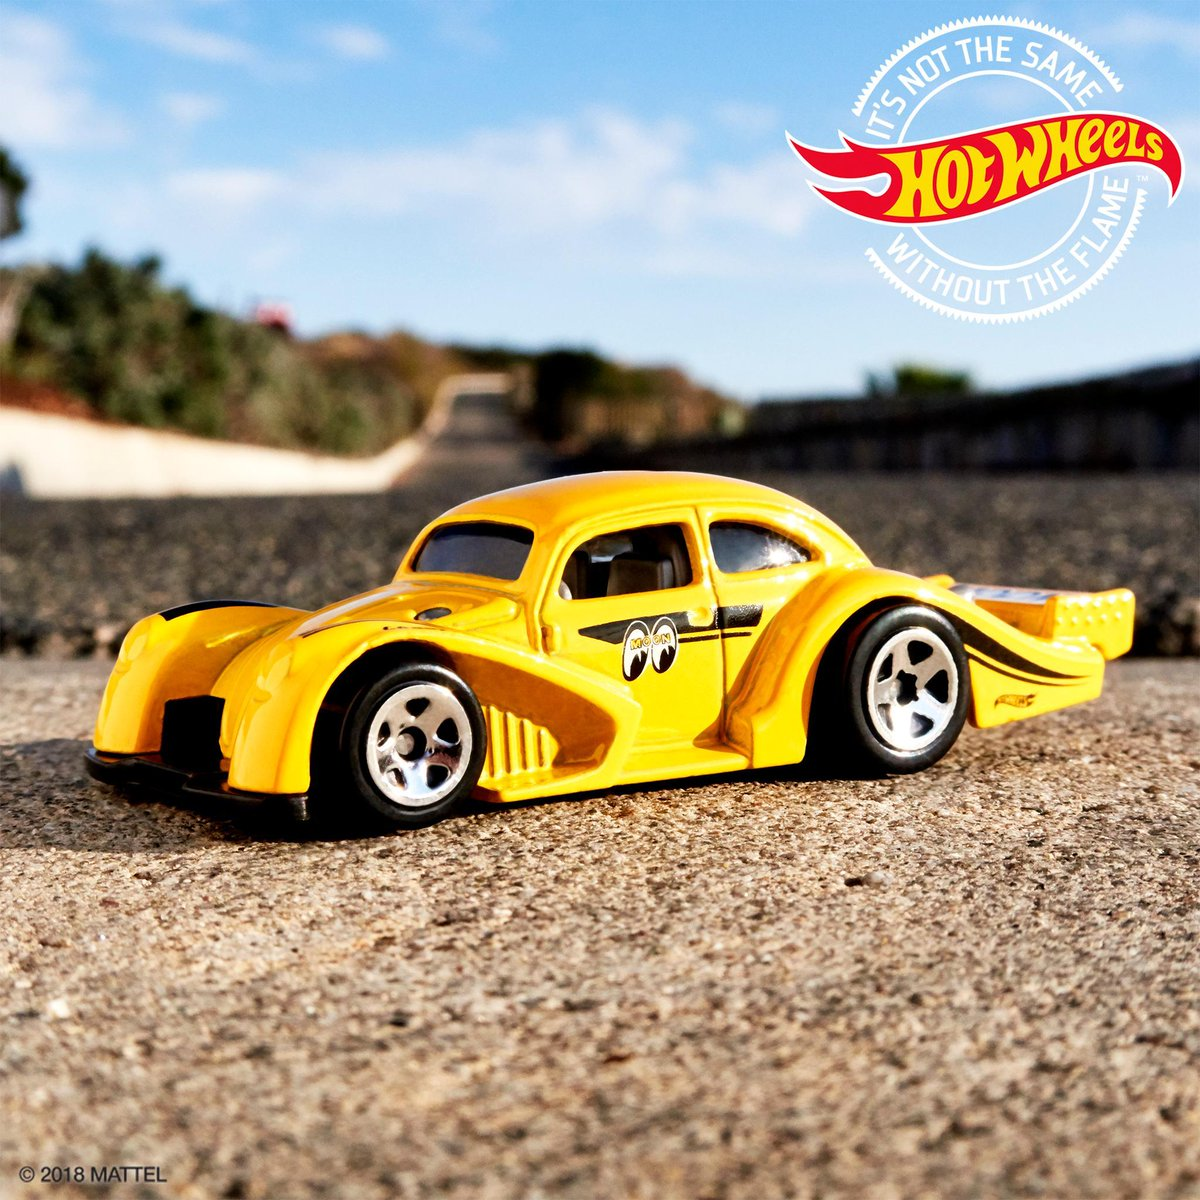 Hot Wheels Hot Wheels Twitter